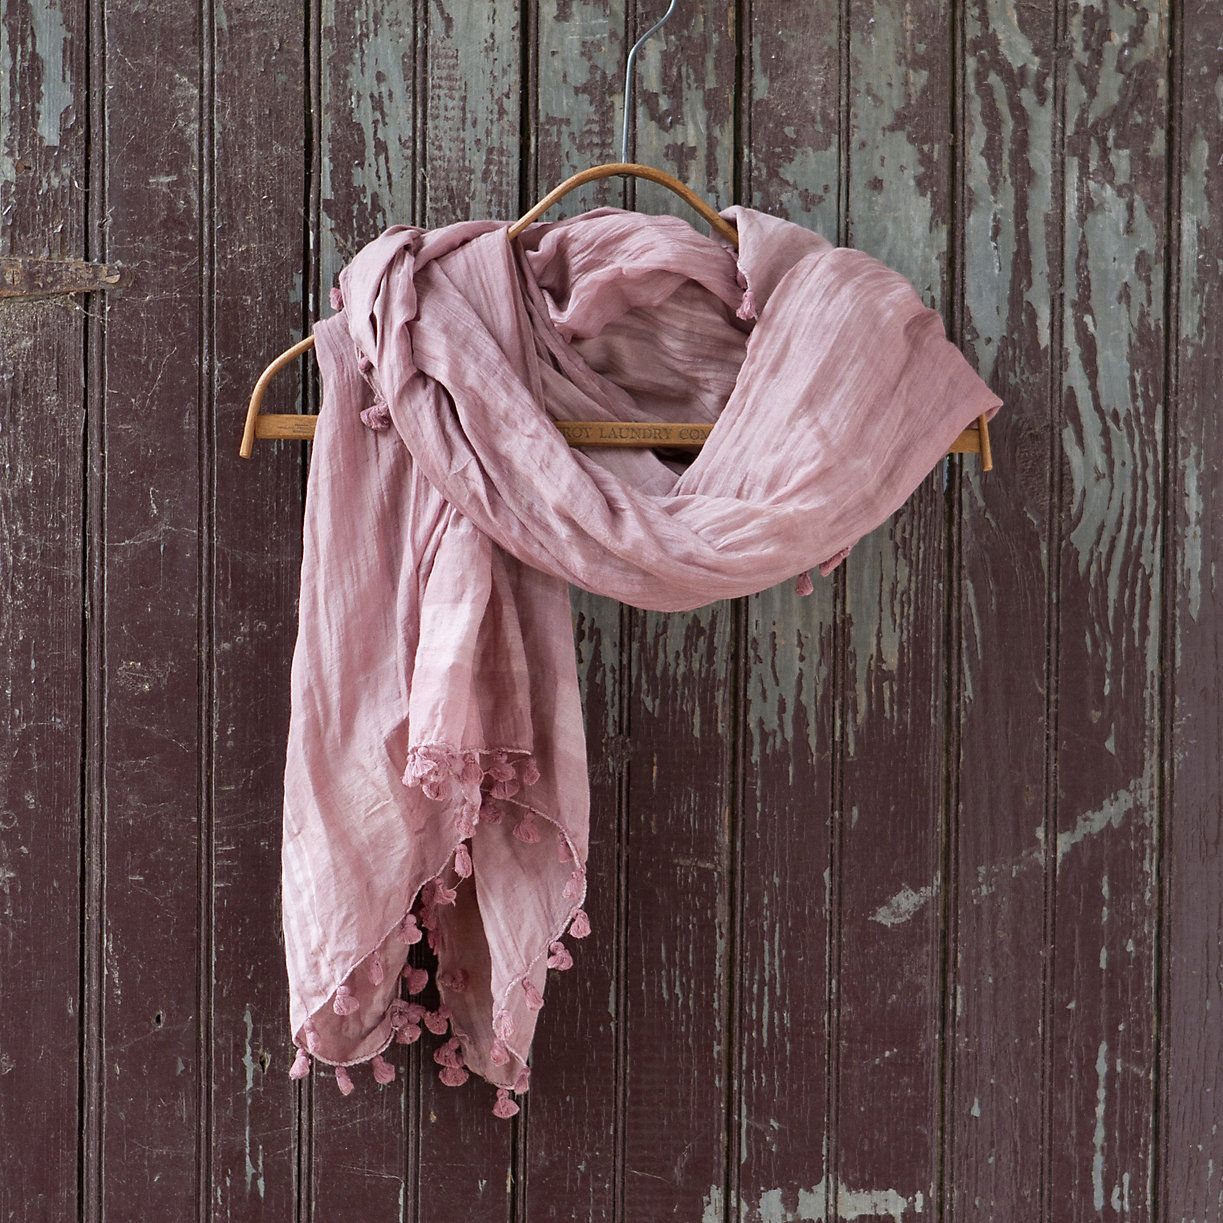 """Big enough to drape over your shoulders as a shawl or wrap as a scarf, this super-soft blend of cotton and silk with subtle, woven details and a playful fringe is just the thing to slip in your tote when you're on the go. - Silk, cotton- Hand wash and dry flat- Imported37""""W, 79.5""""L"""